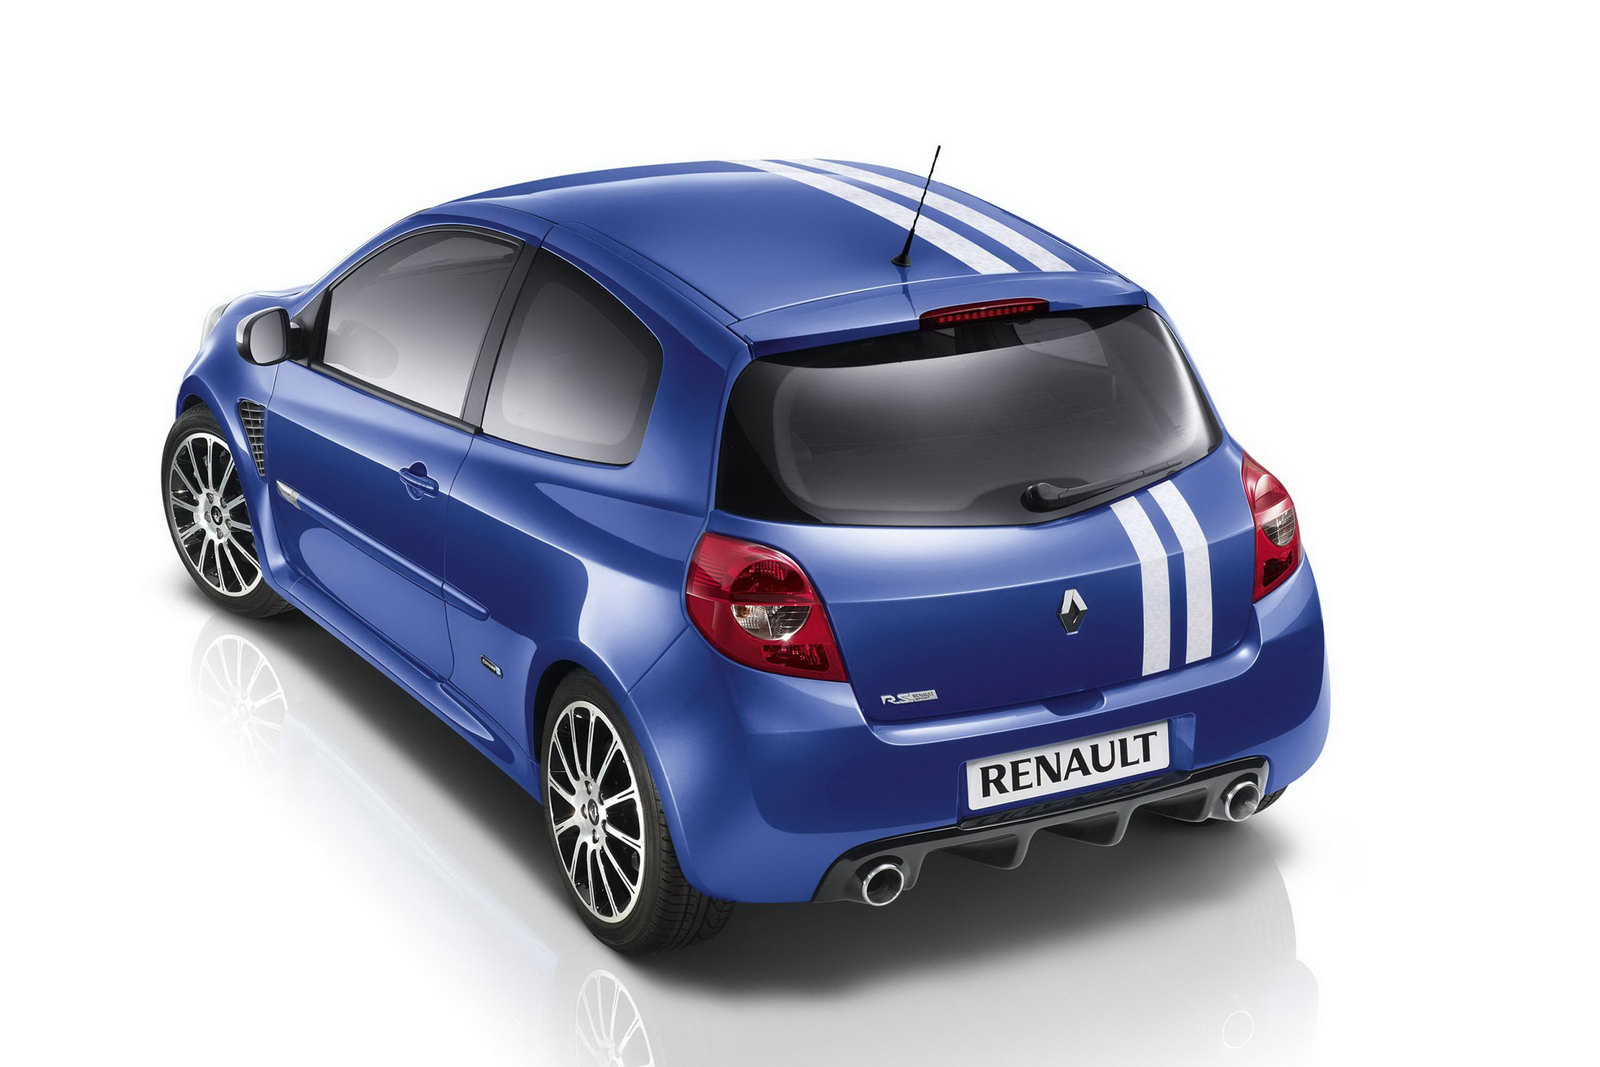 renault clio gordini 200 priced at 19 650 limited to 500. Black Bedroom Furniture Sets. Home Design Ideas